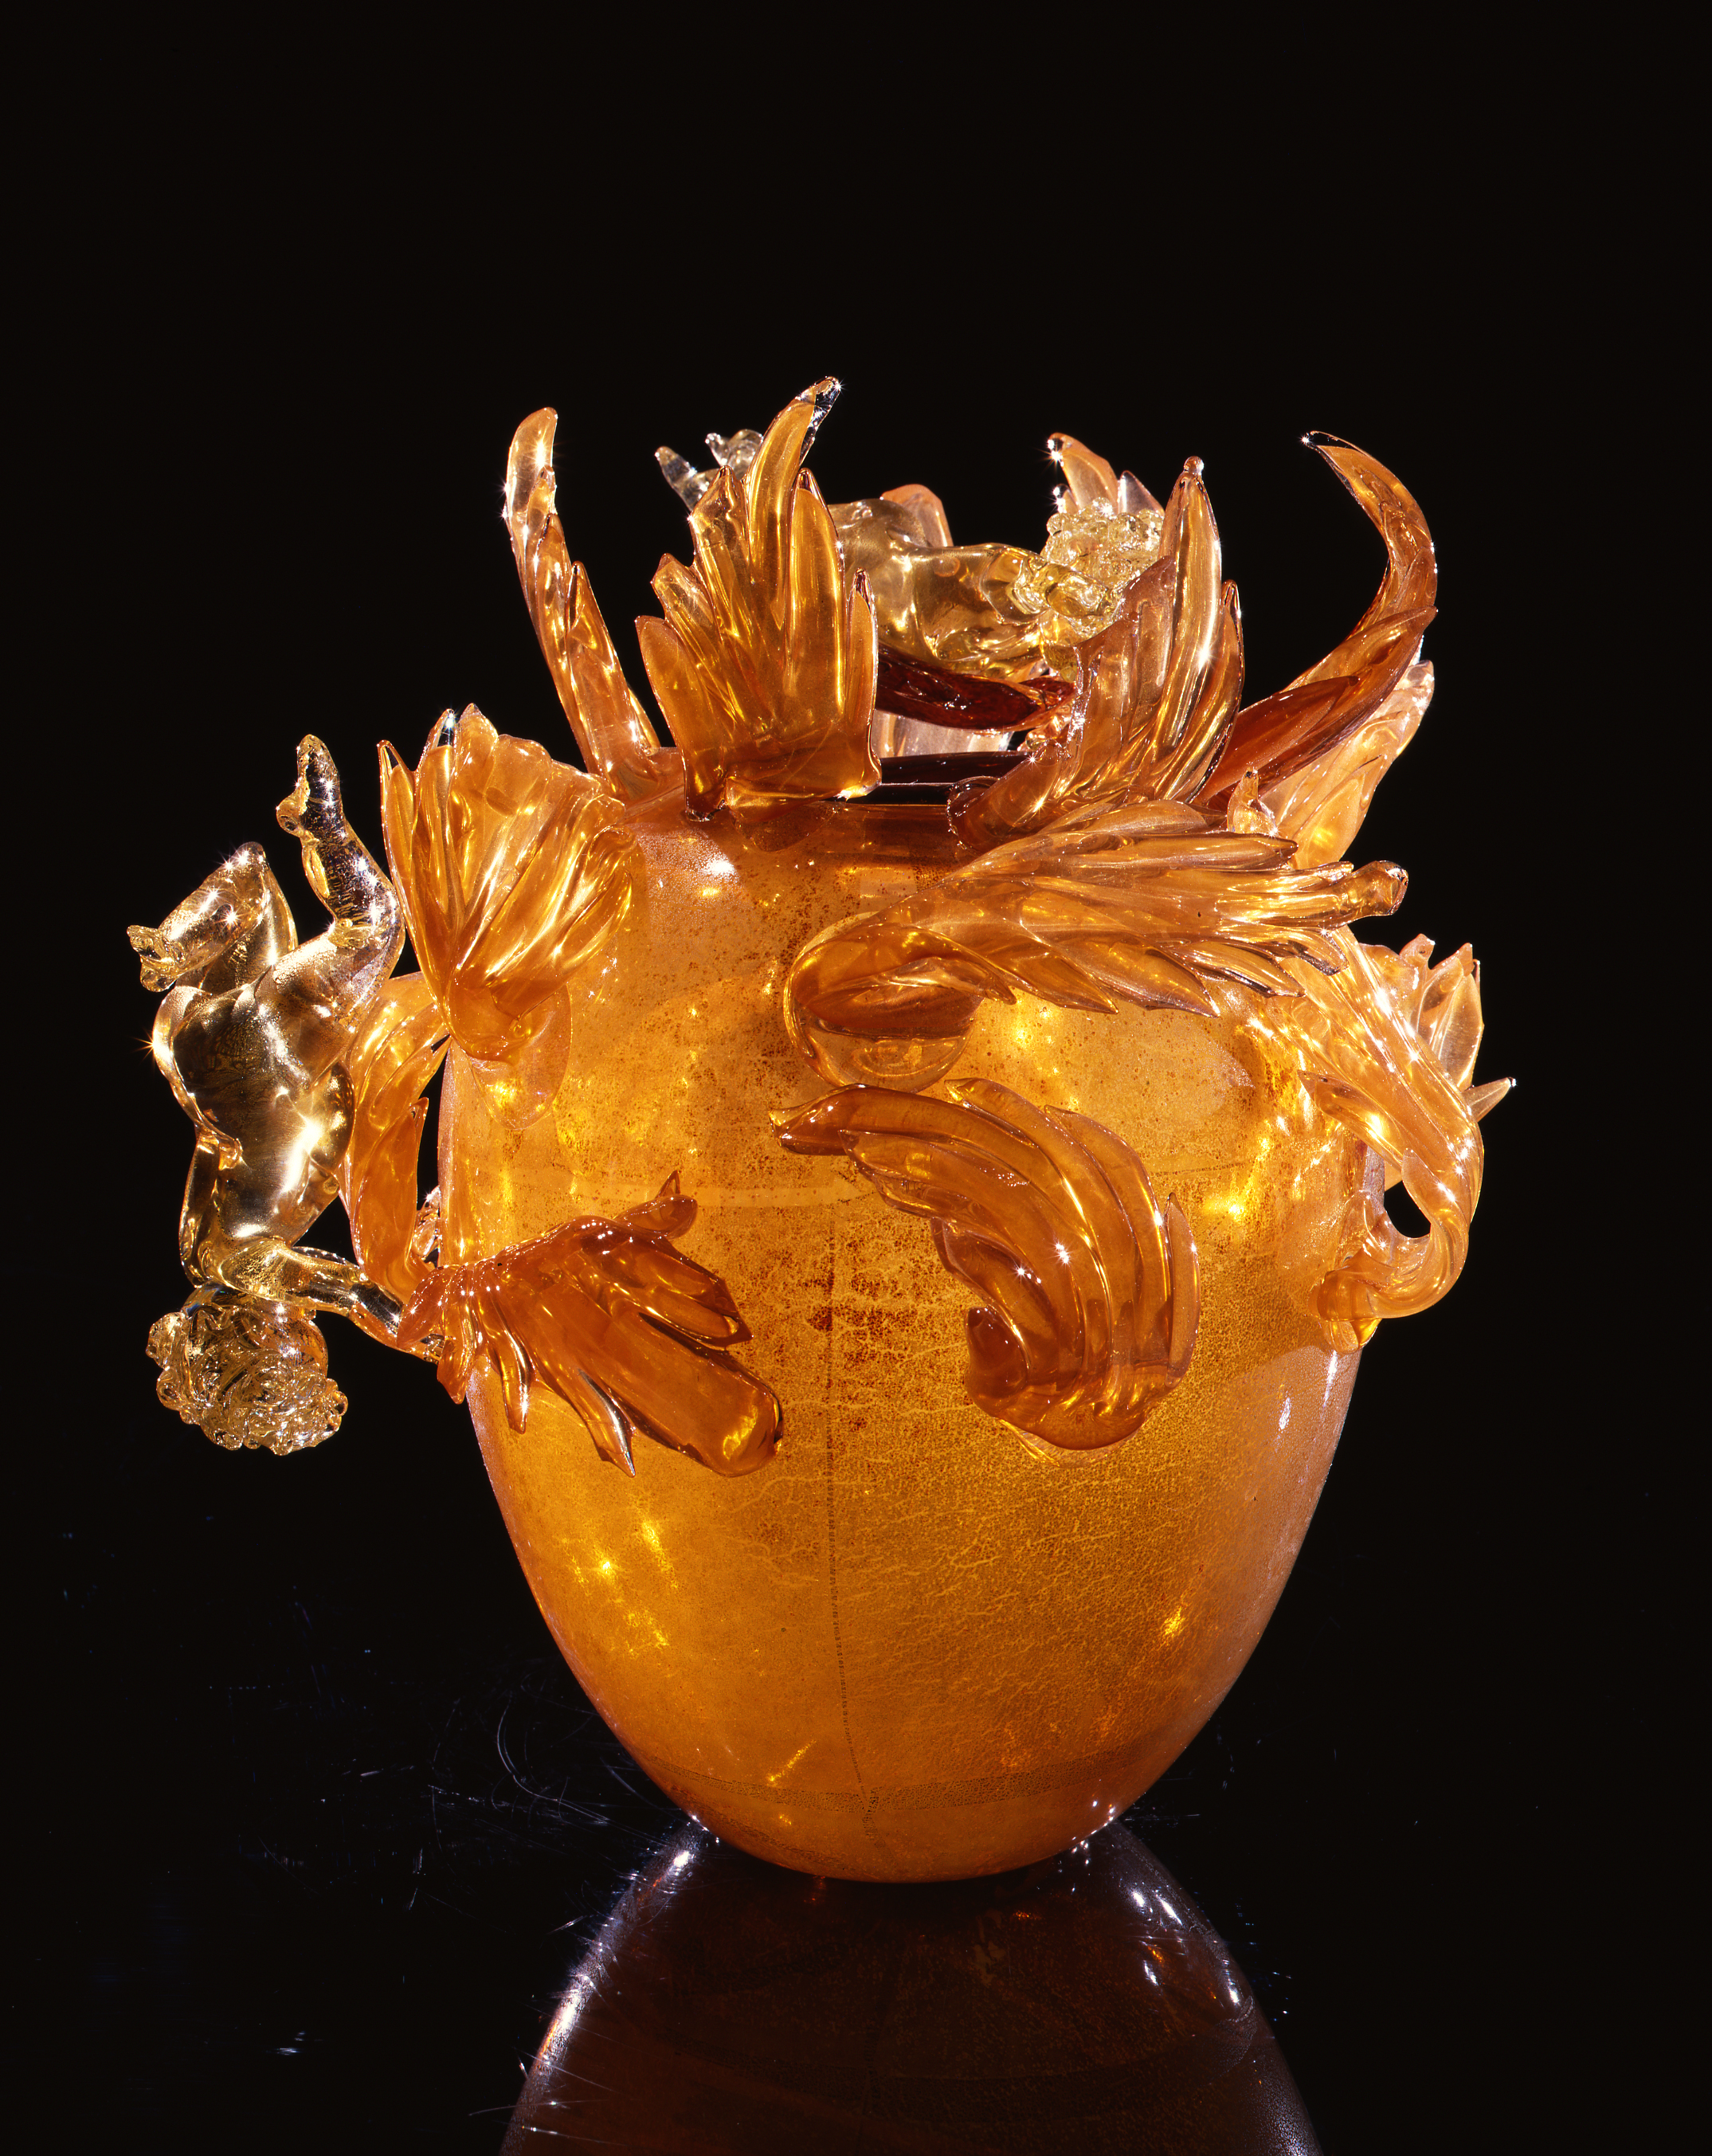 Dale Chihuly,  Gold over Bright Orange Putti Venetian with Leaves  (1994, glass, 15 x 15 x 15 inches)